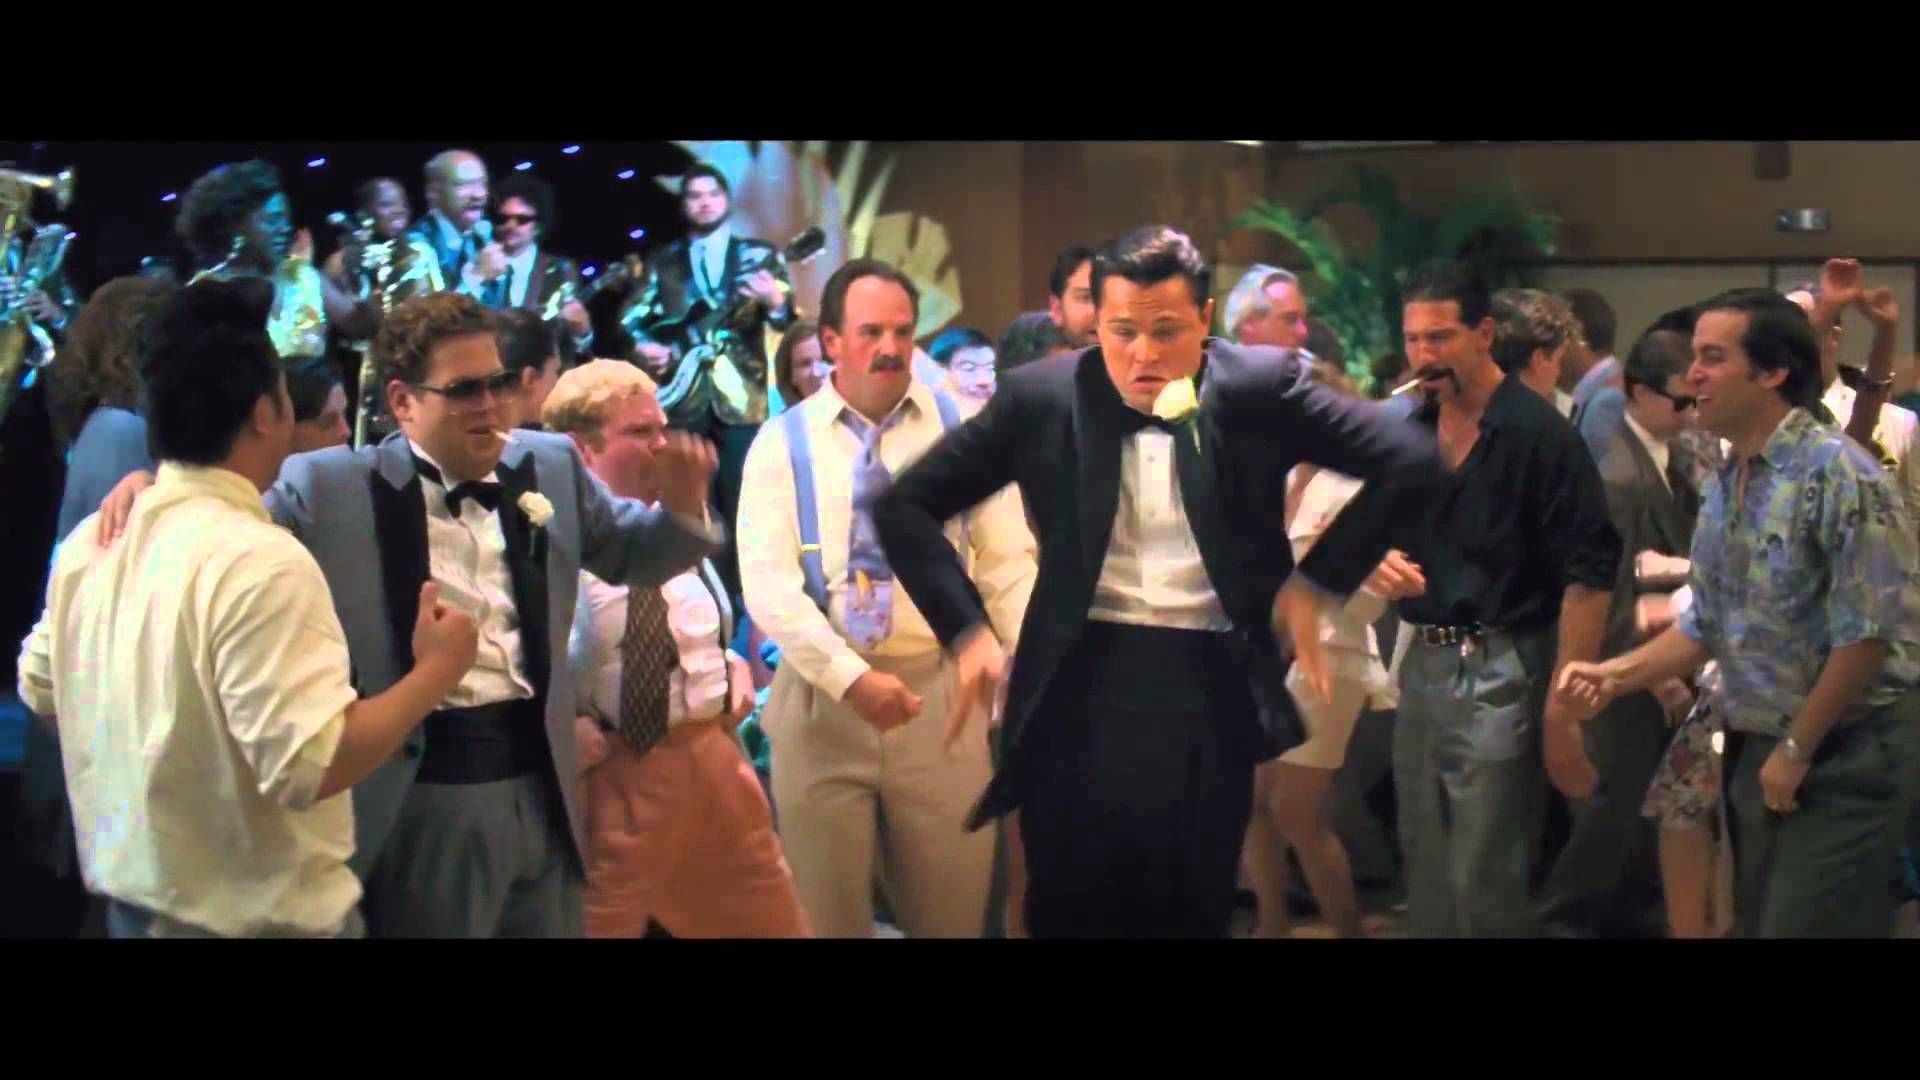 Wolf of Wall Street Dance ft. Robin Thicke imagens